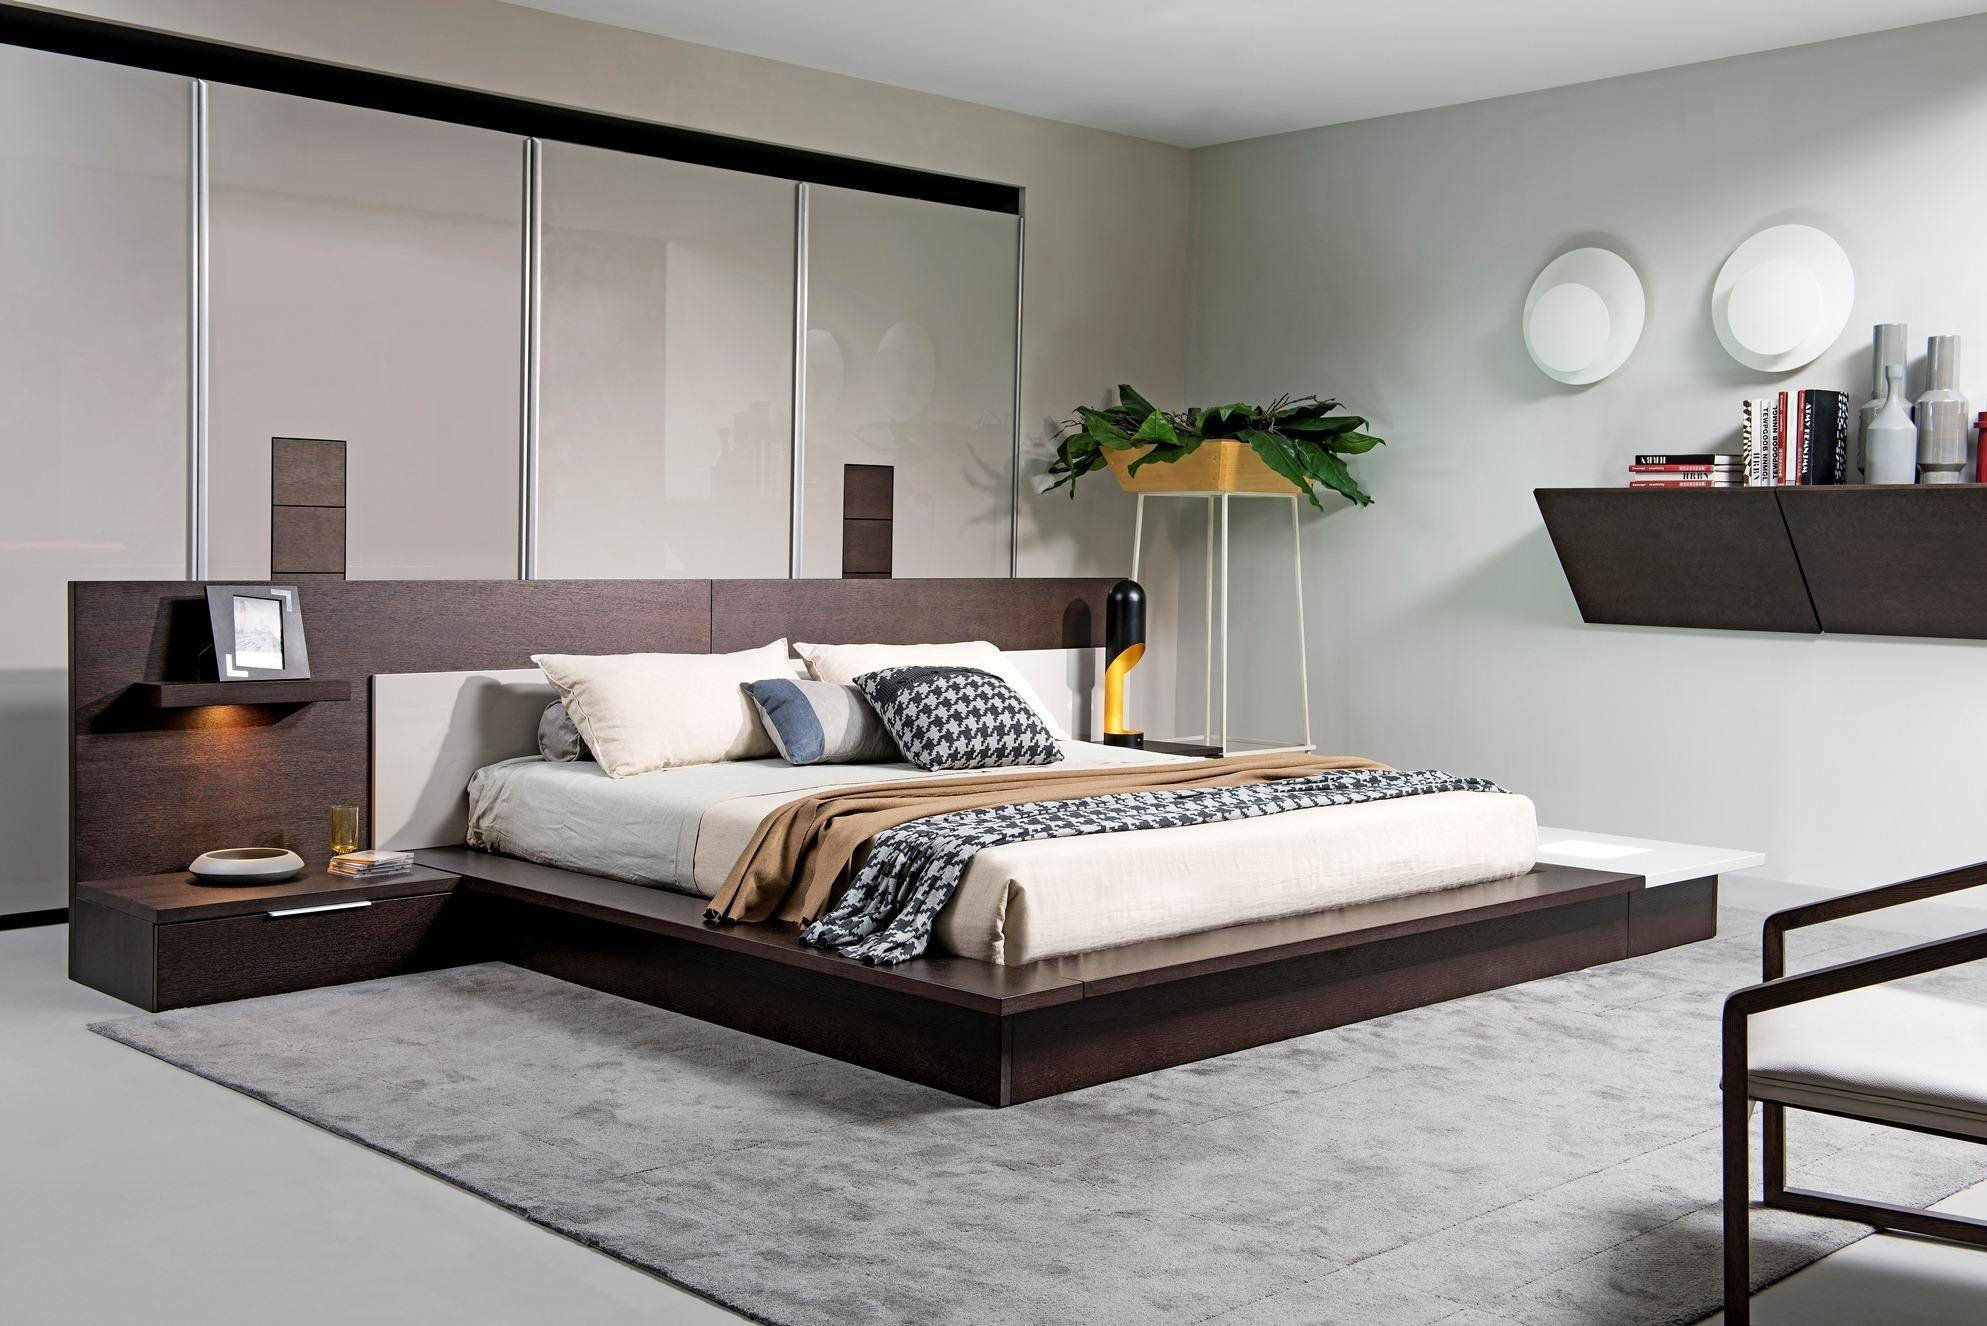 Black and Brown Bedroom Luxury Vig Modrest torino Brown Oak Grey Queen Bed W Lights Built